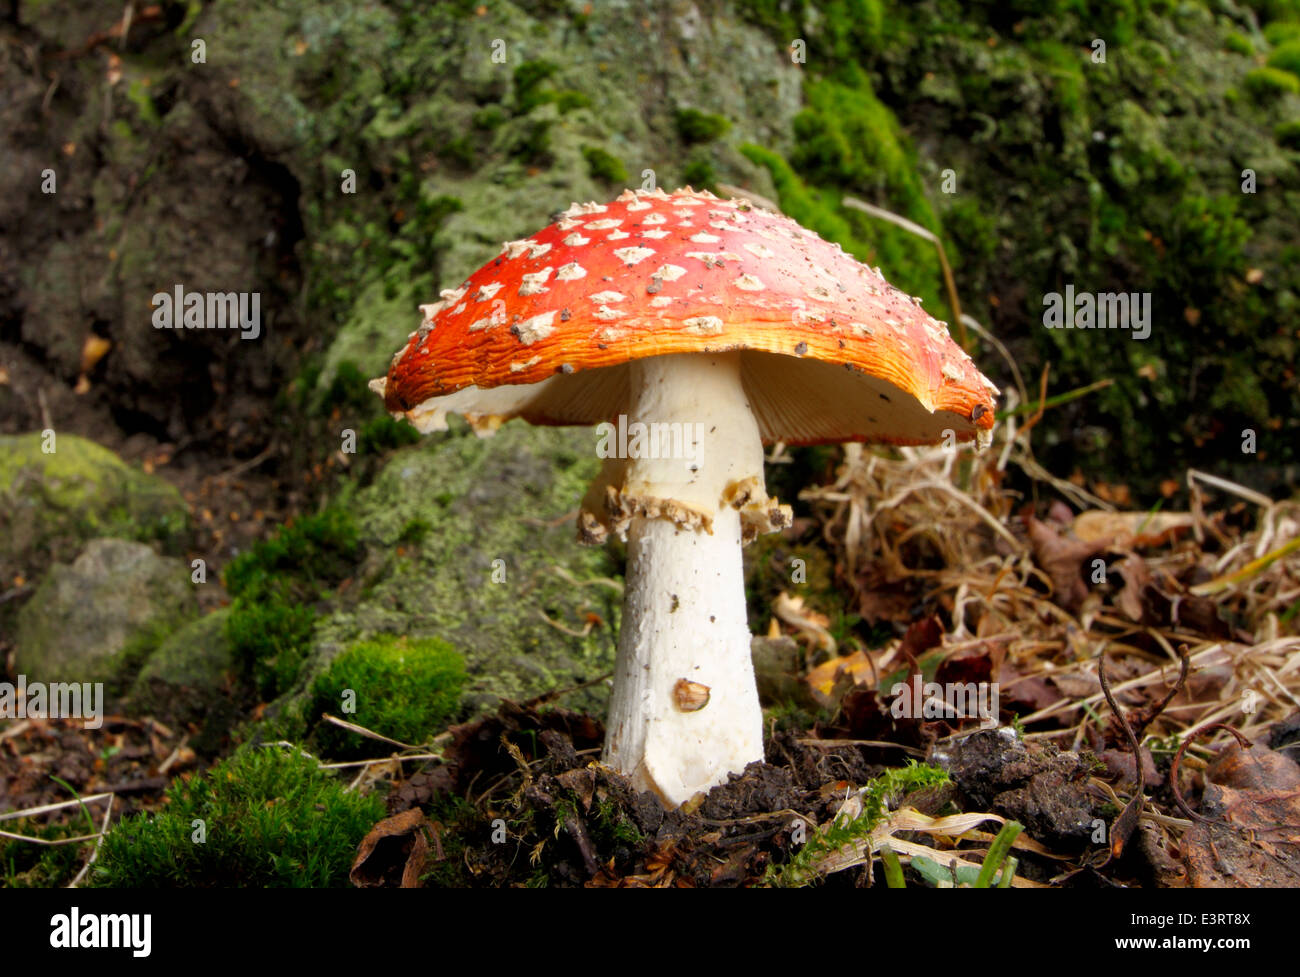 A poisonous fly agaric fungi (amanita muscaria) grows at the base of a tree in a small patch of roadside woodland, Stock Photo